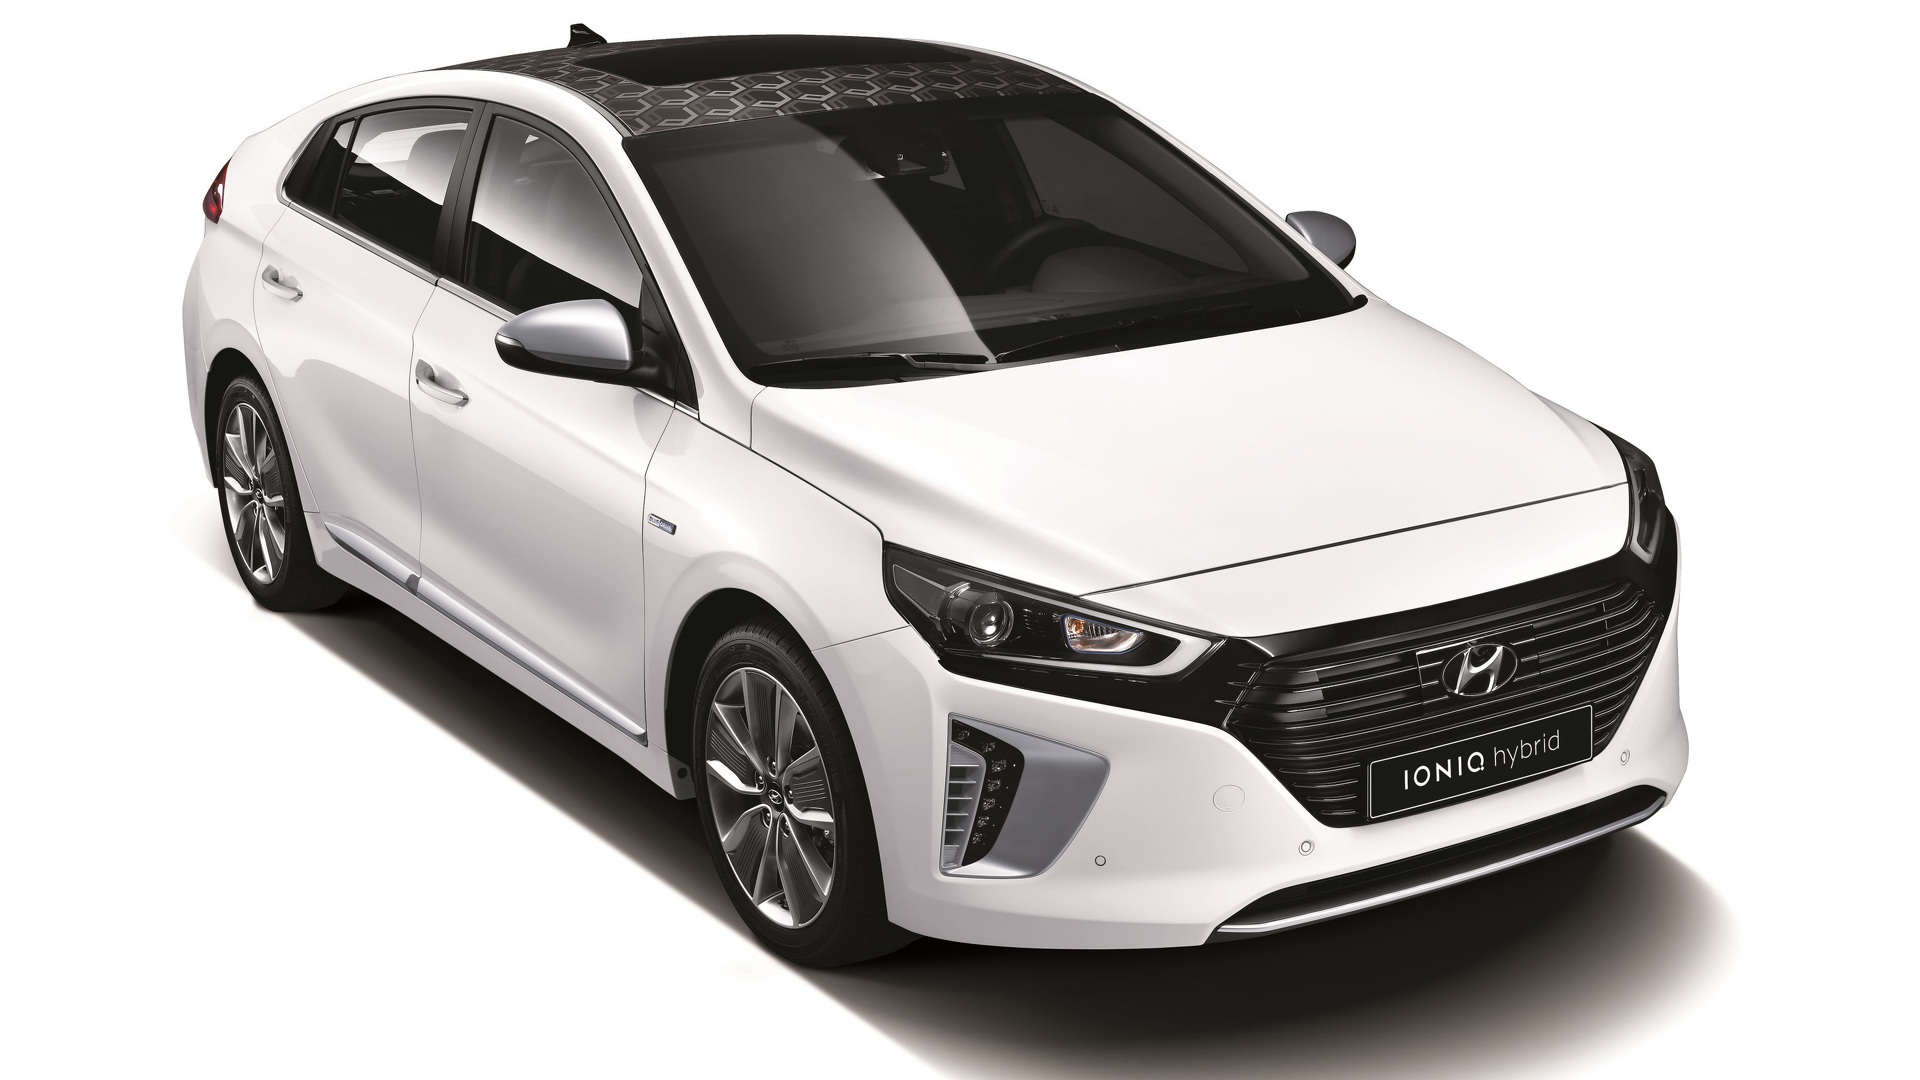 Hyundai Ioniq headed for New York with three eco-friendly powertrains